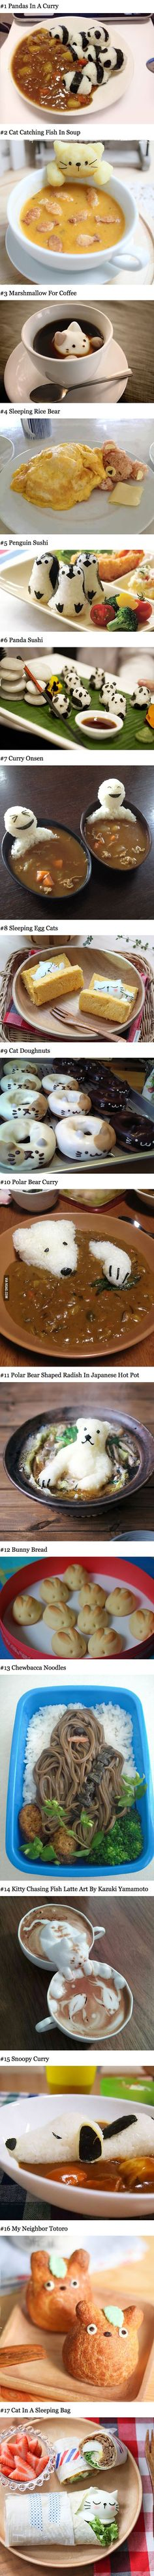 Imagine That You Get Into A Restaurant, You Sit Down And They Serve You THIS...